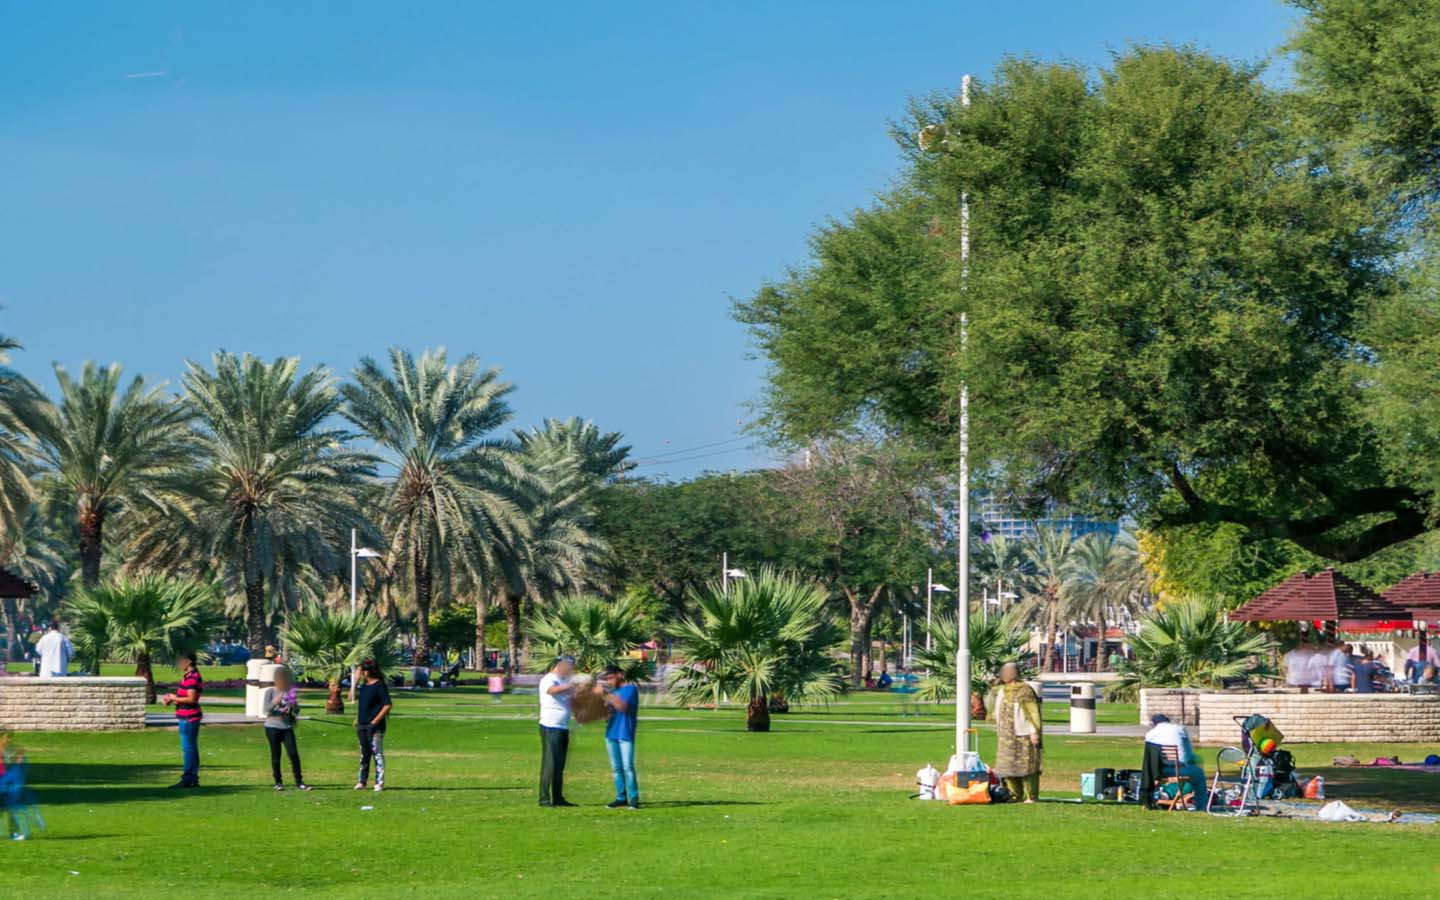 People on lawn in Dubai Creek Park